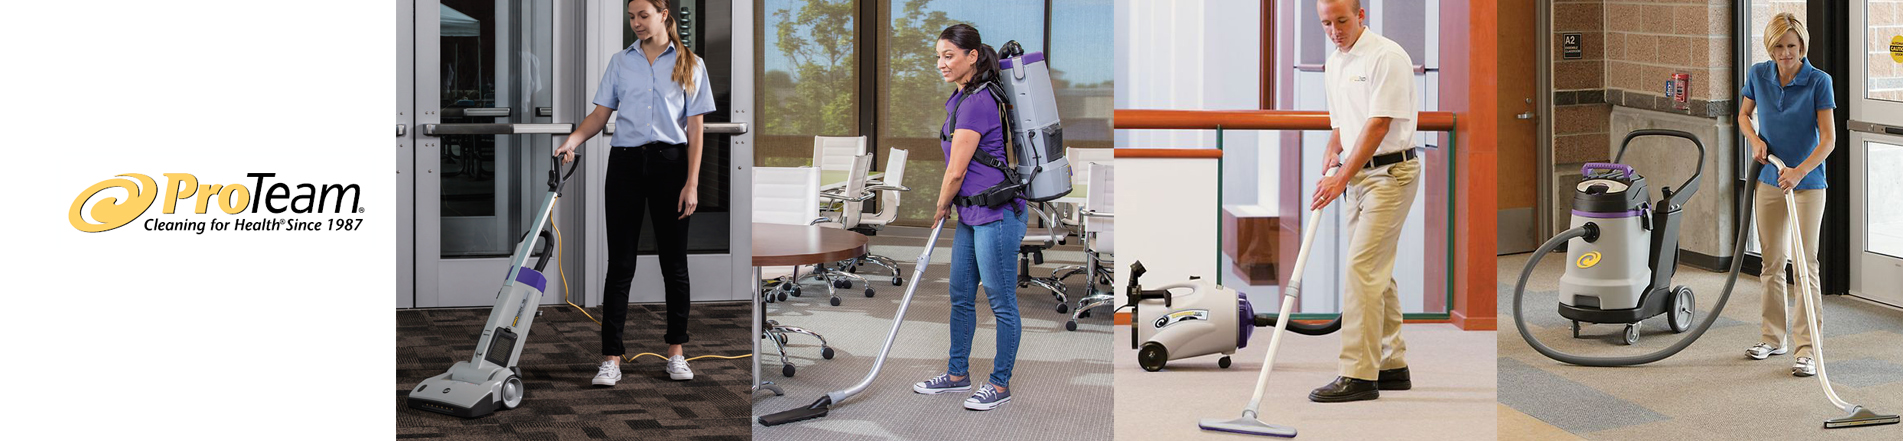 ProTeam - Cleaning for Health Since 1987